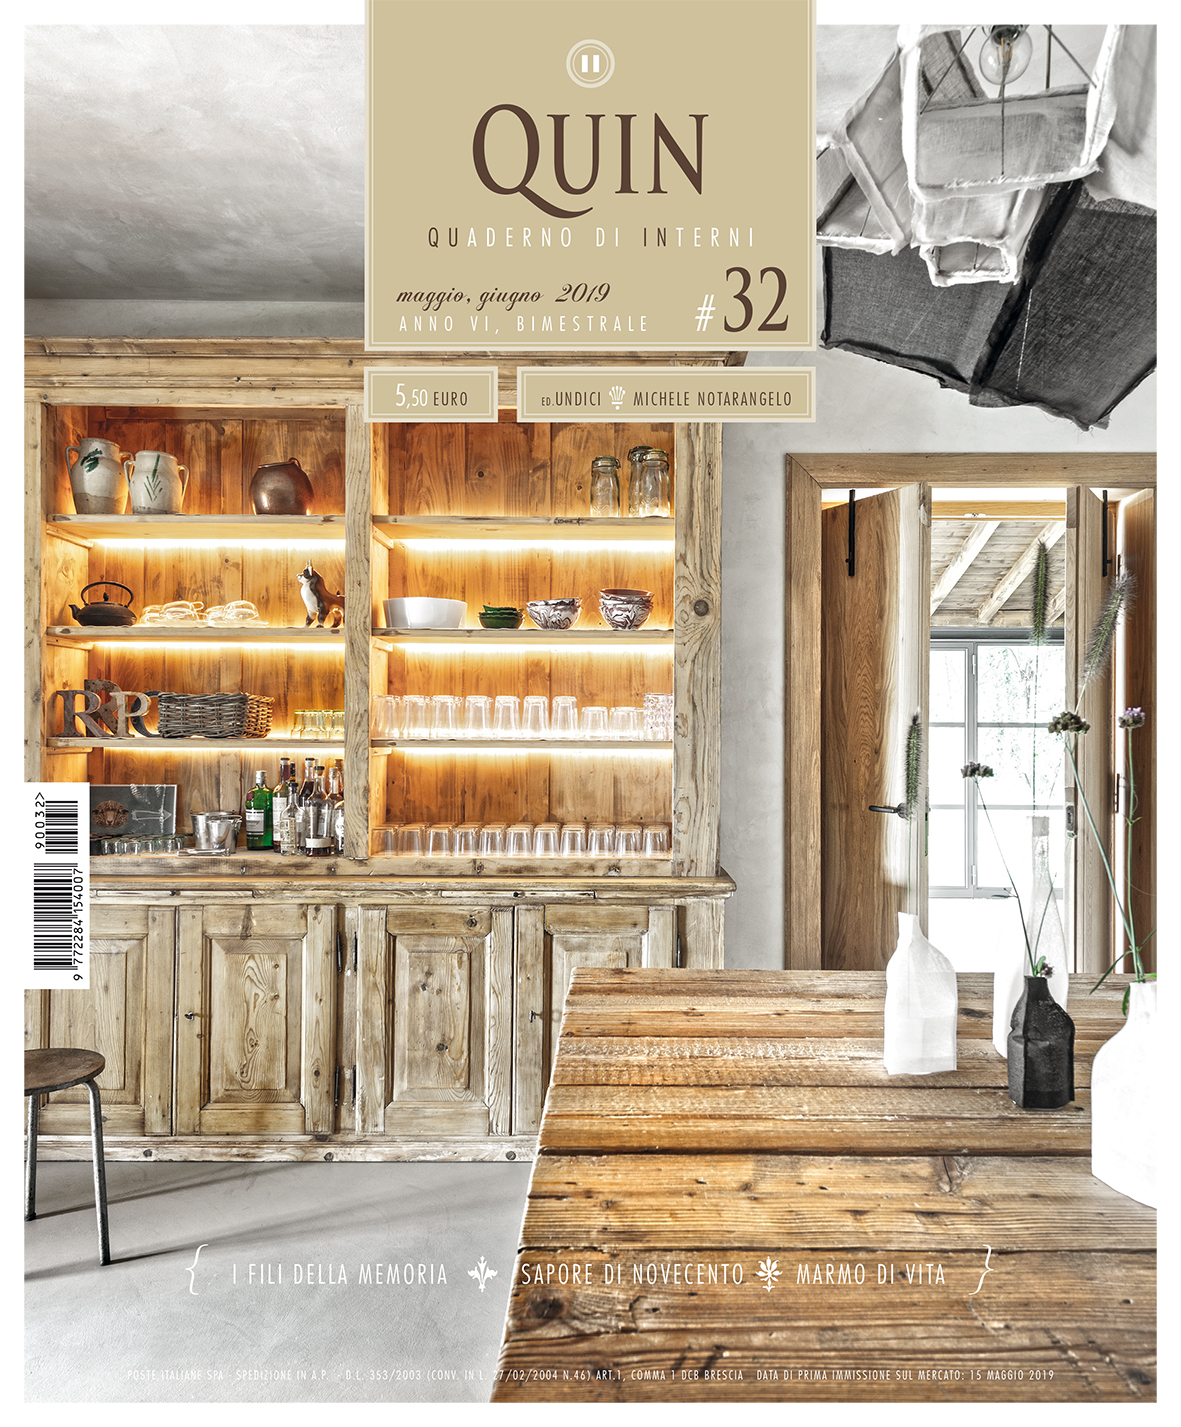 Quin cover image